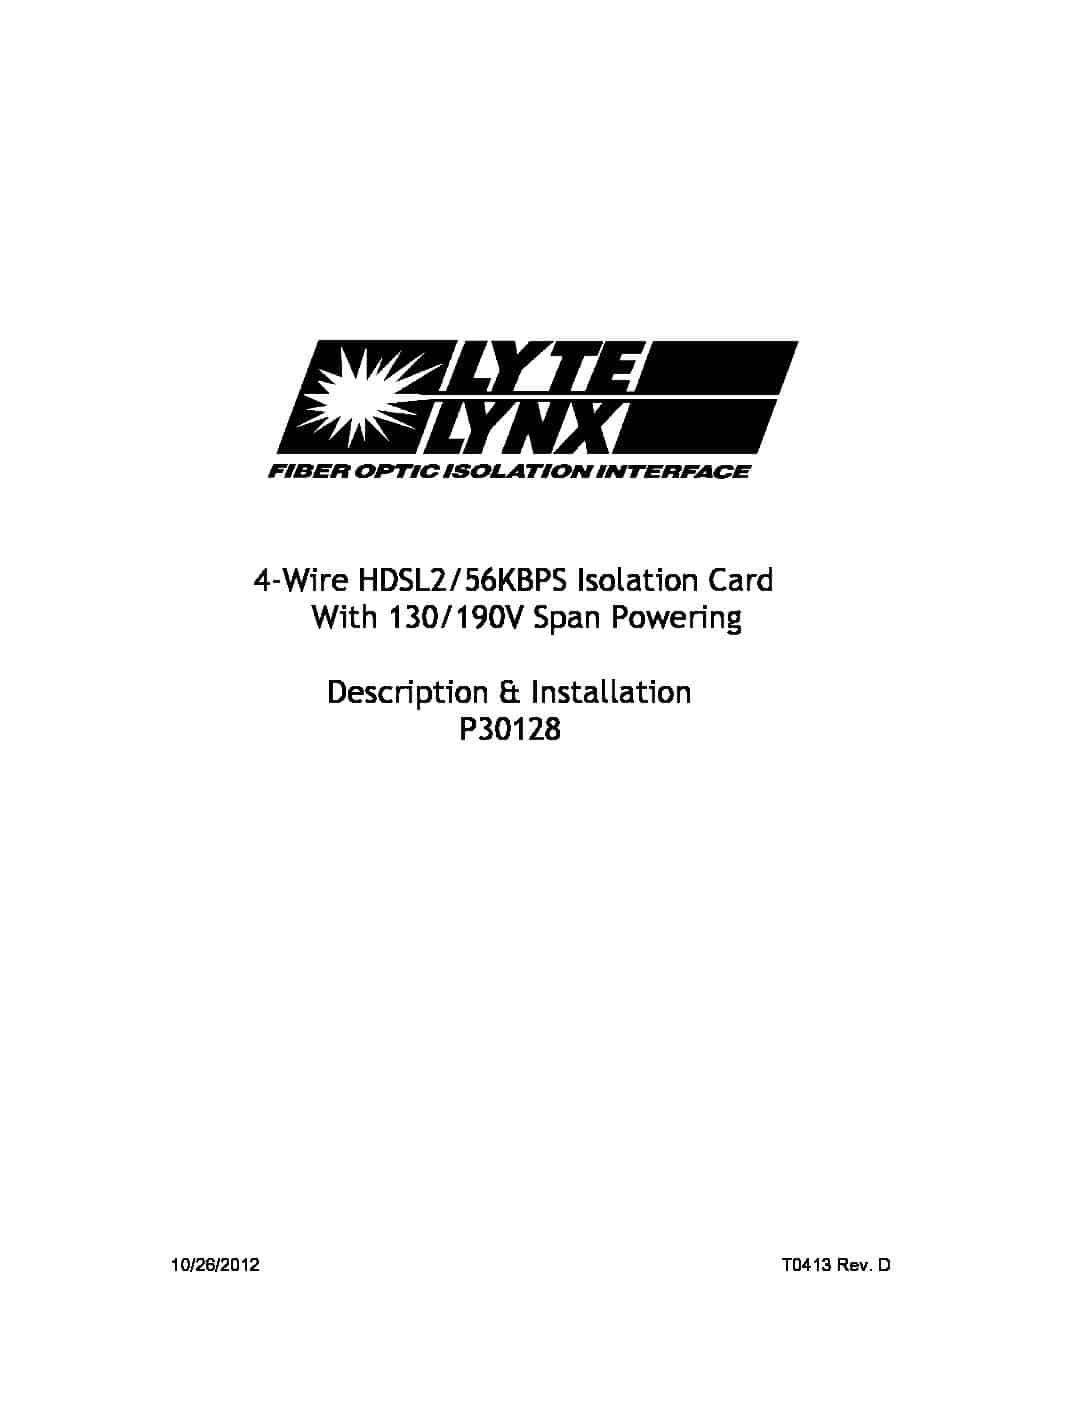 P30128 4-Wire HDSL2 56KBPS Isolation Card PDF thumbnail